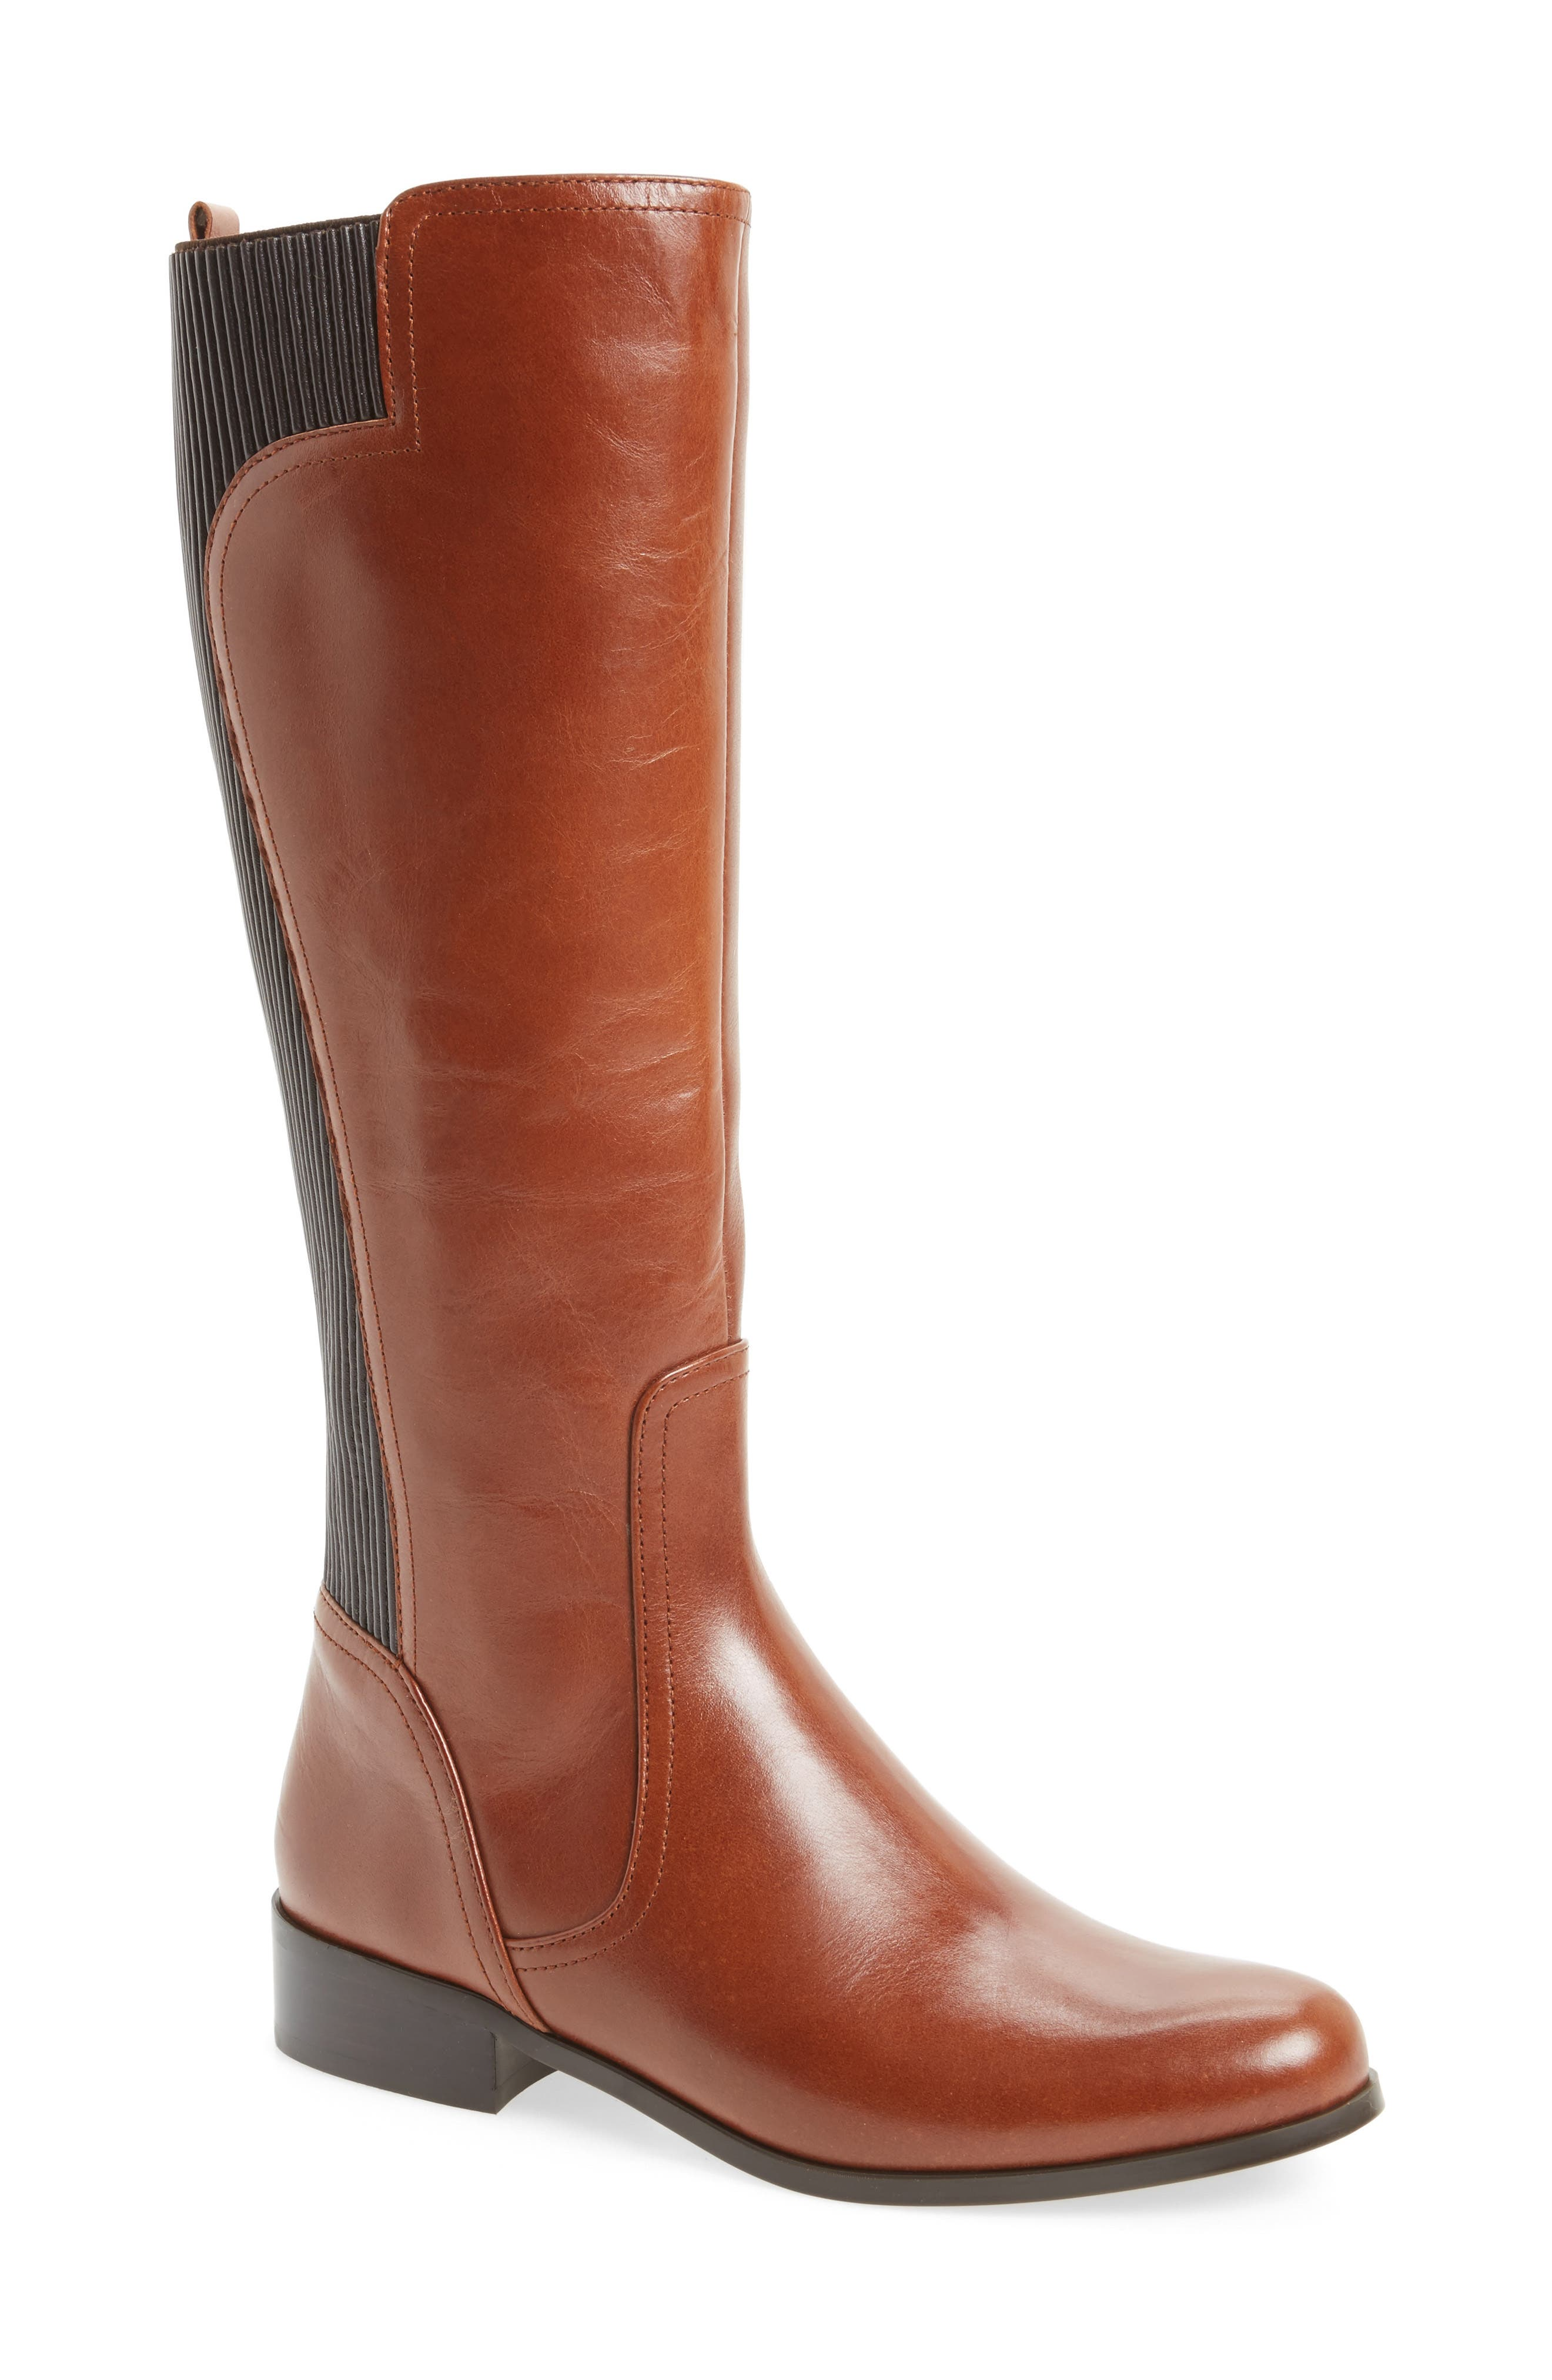 Rebel Tall Boot,                         Main,                         color, Tan Leather